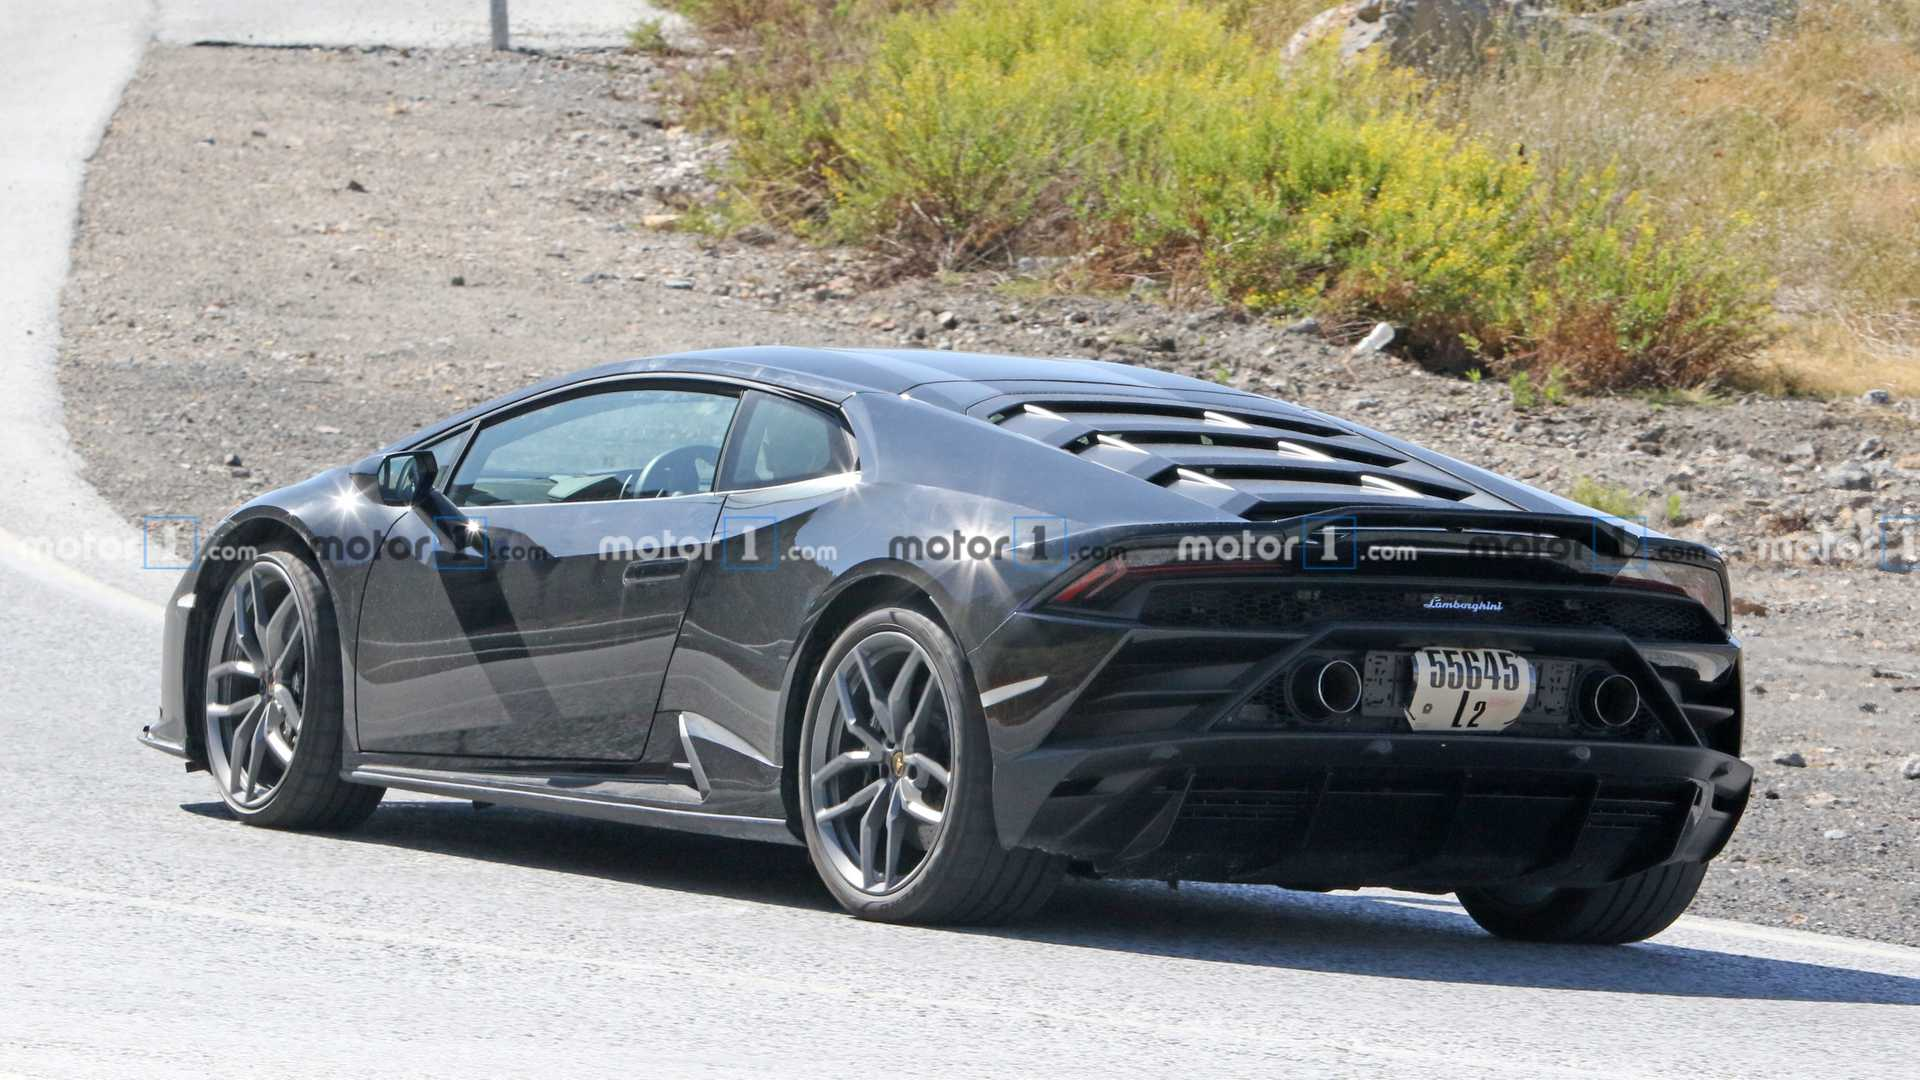 Lamborghini Huracan Evo Test Car Spied With Strange Engine Cover